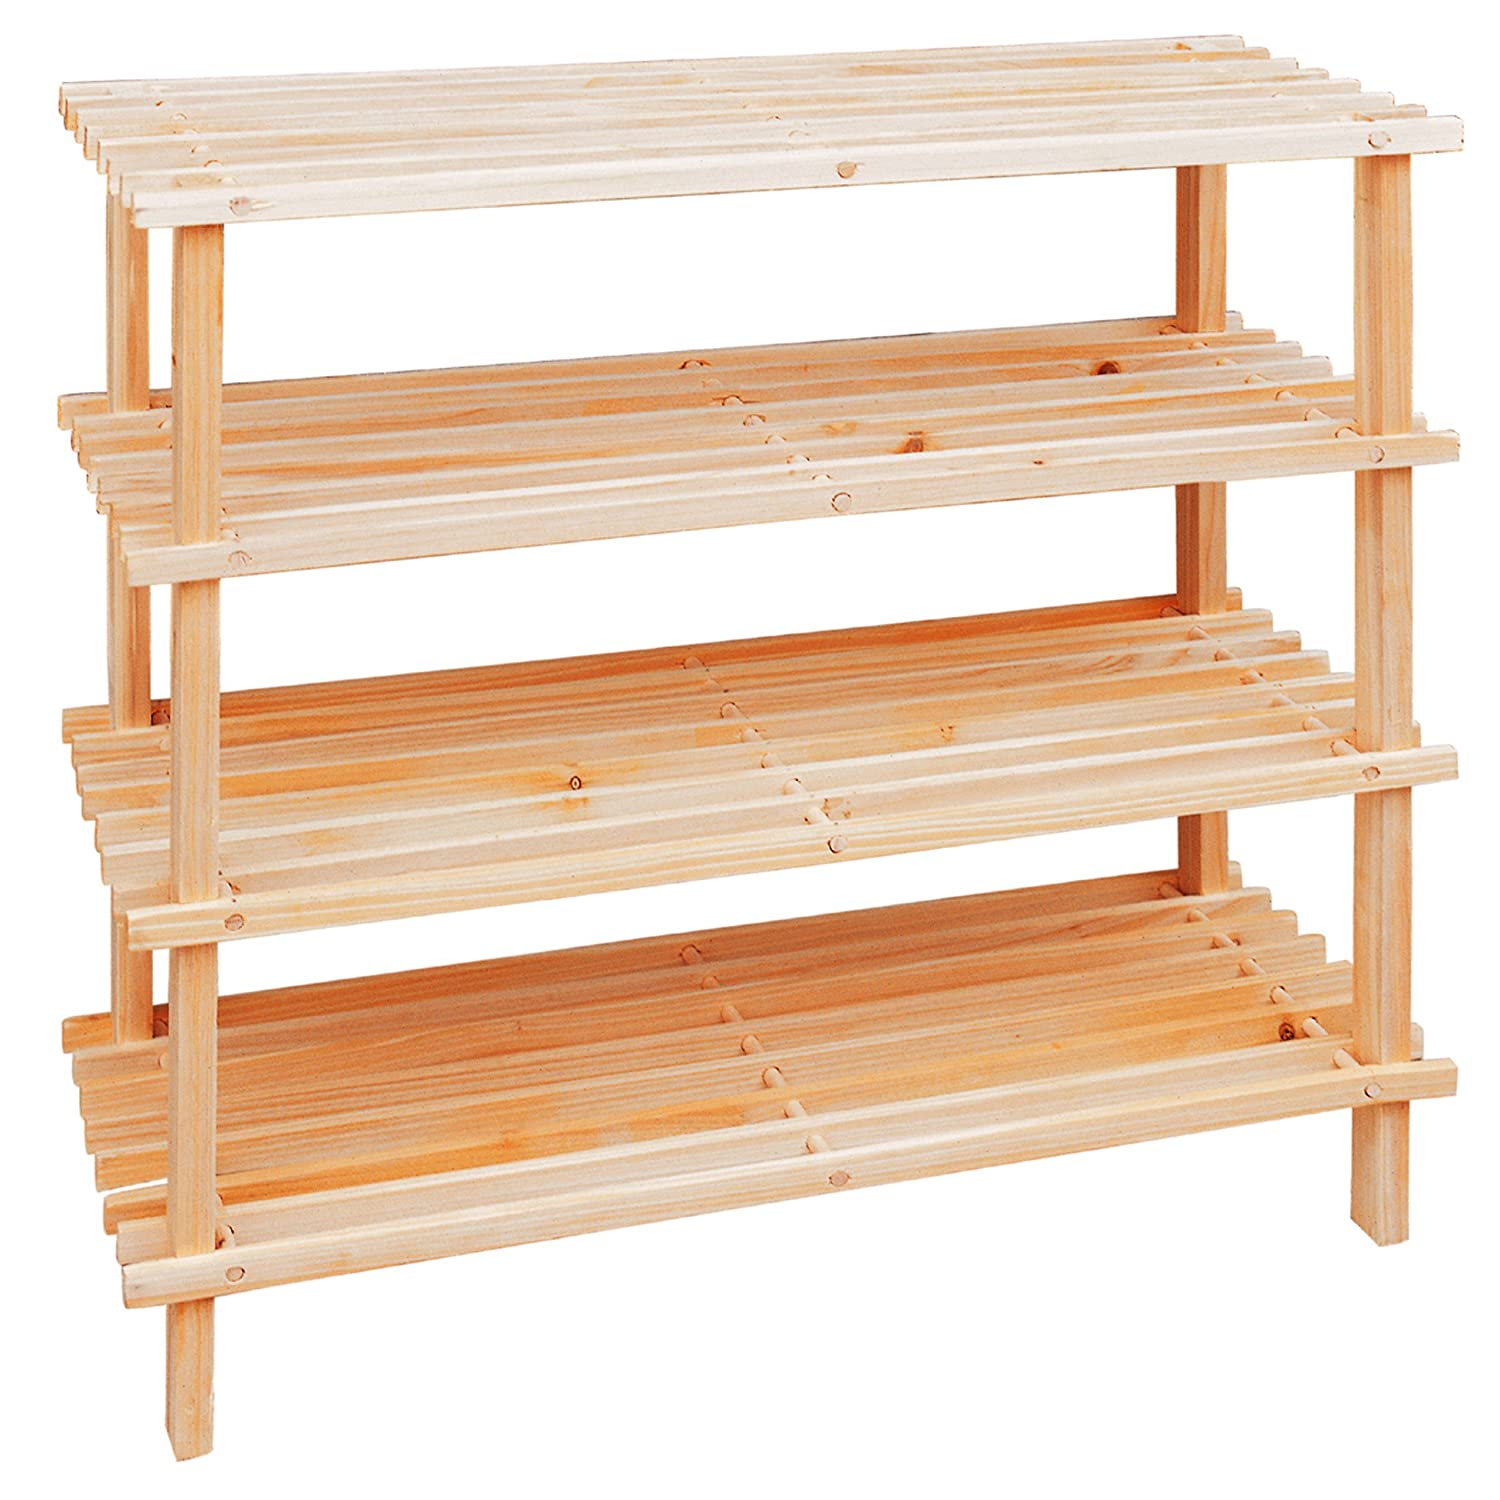 wooden shoe rack designs india